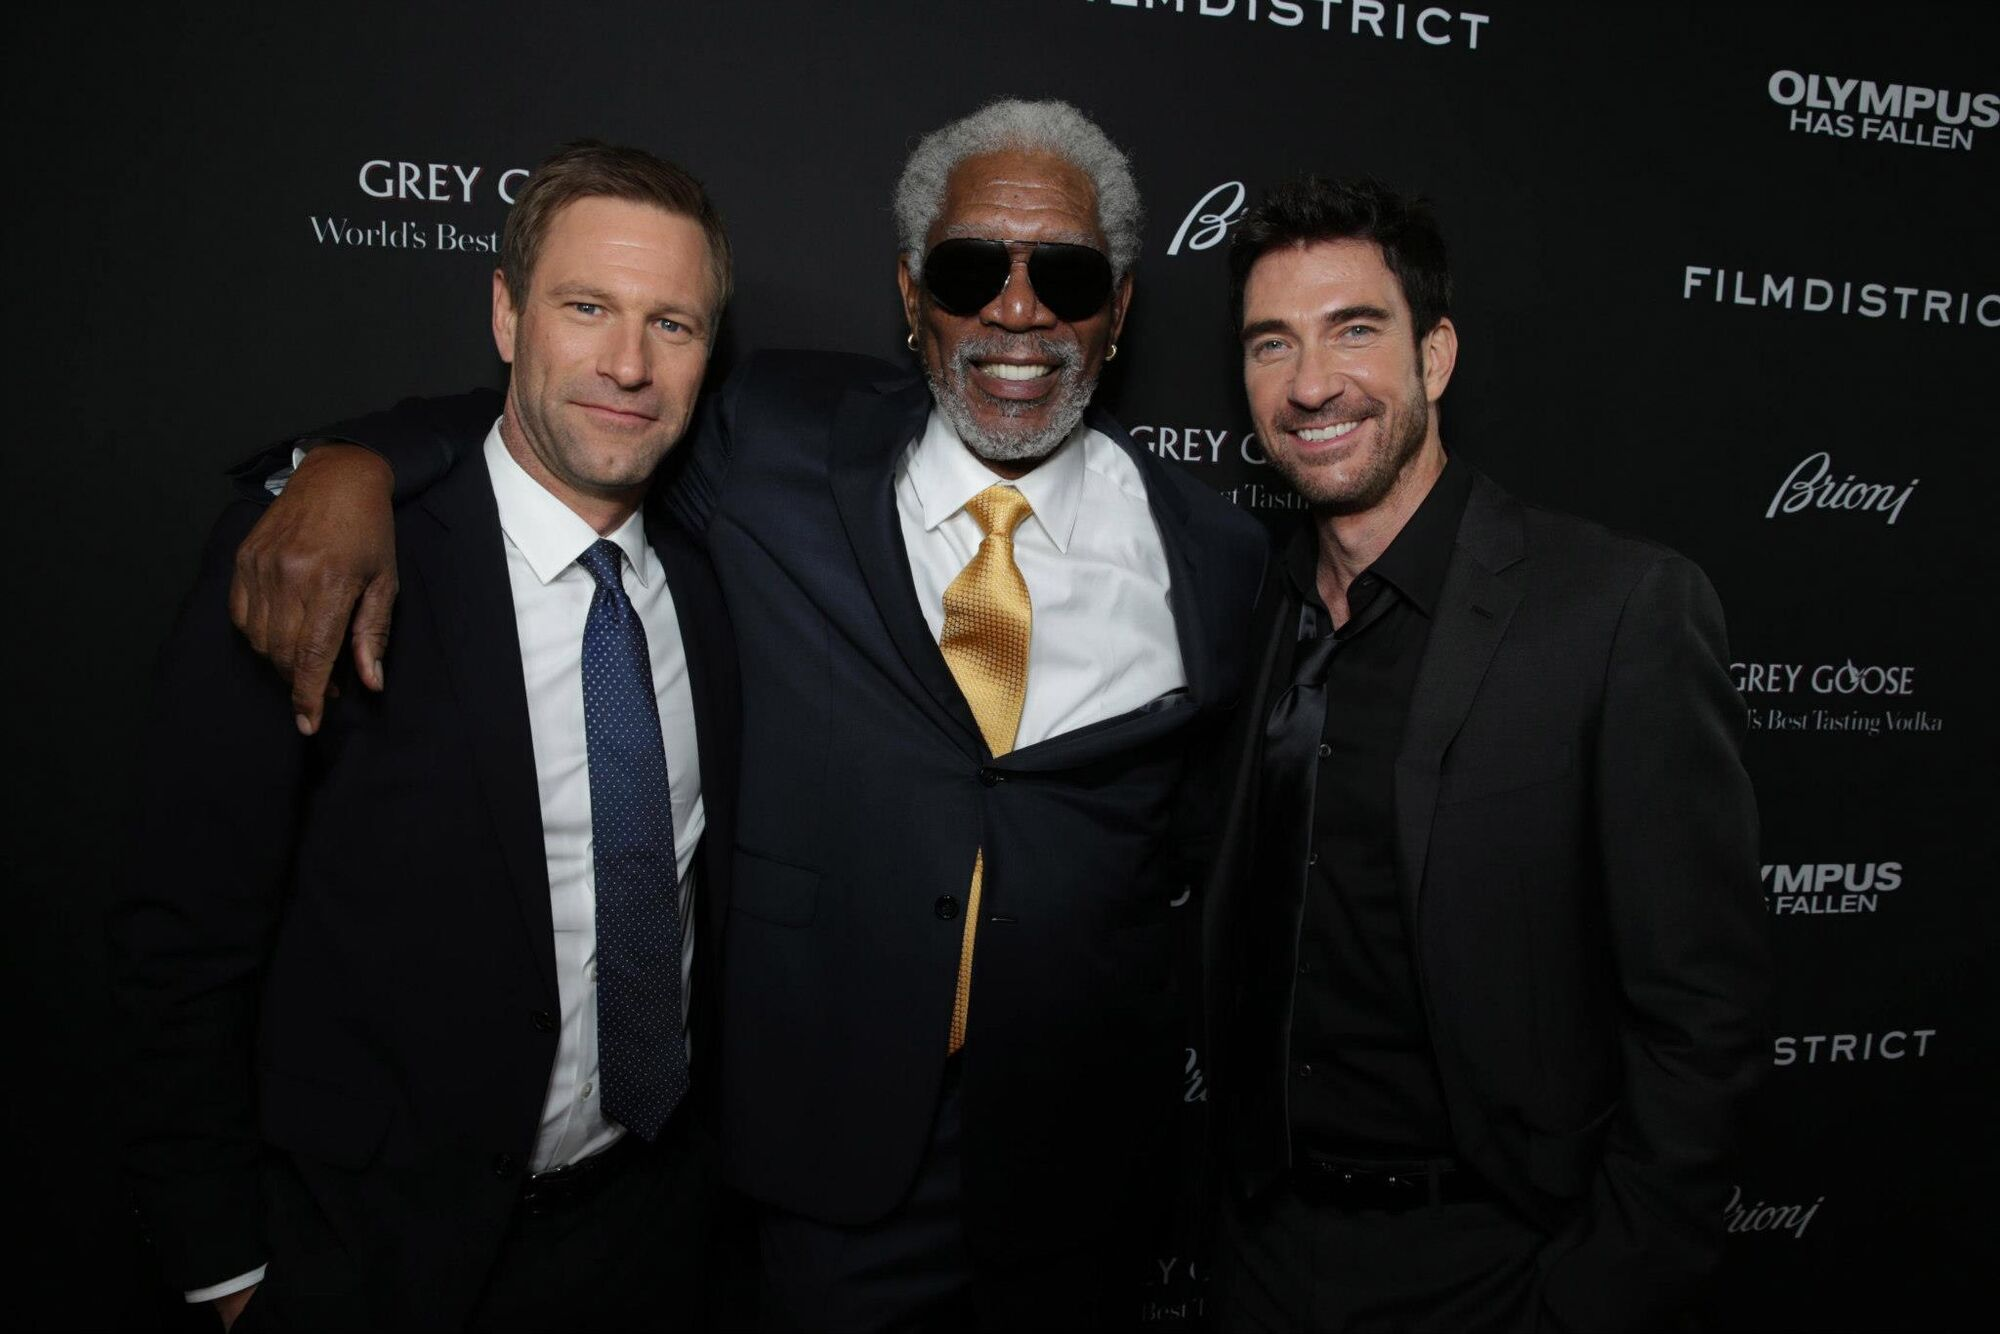 Category:London Has Fallen actors | Olympus Has Fallen ... - photo#32